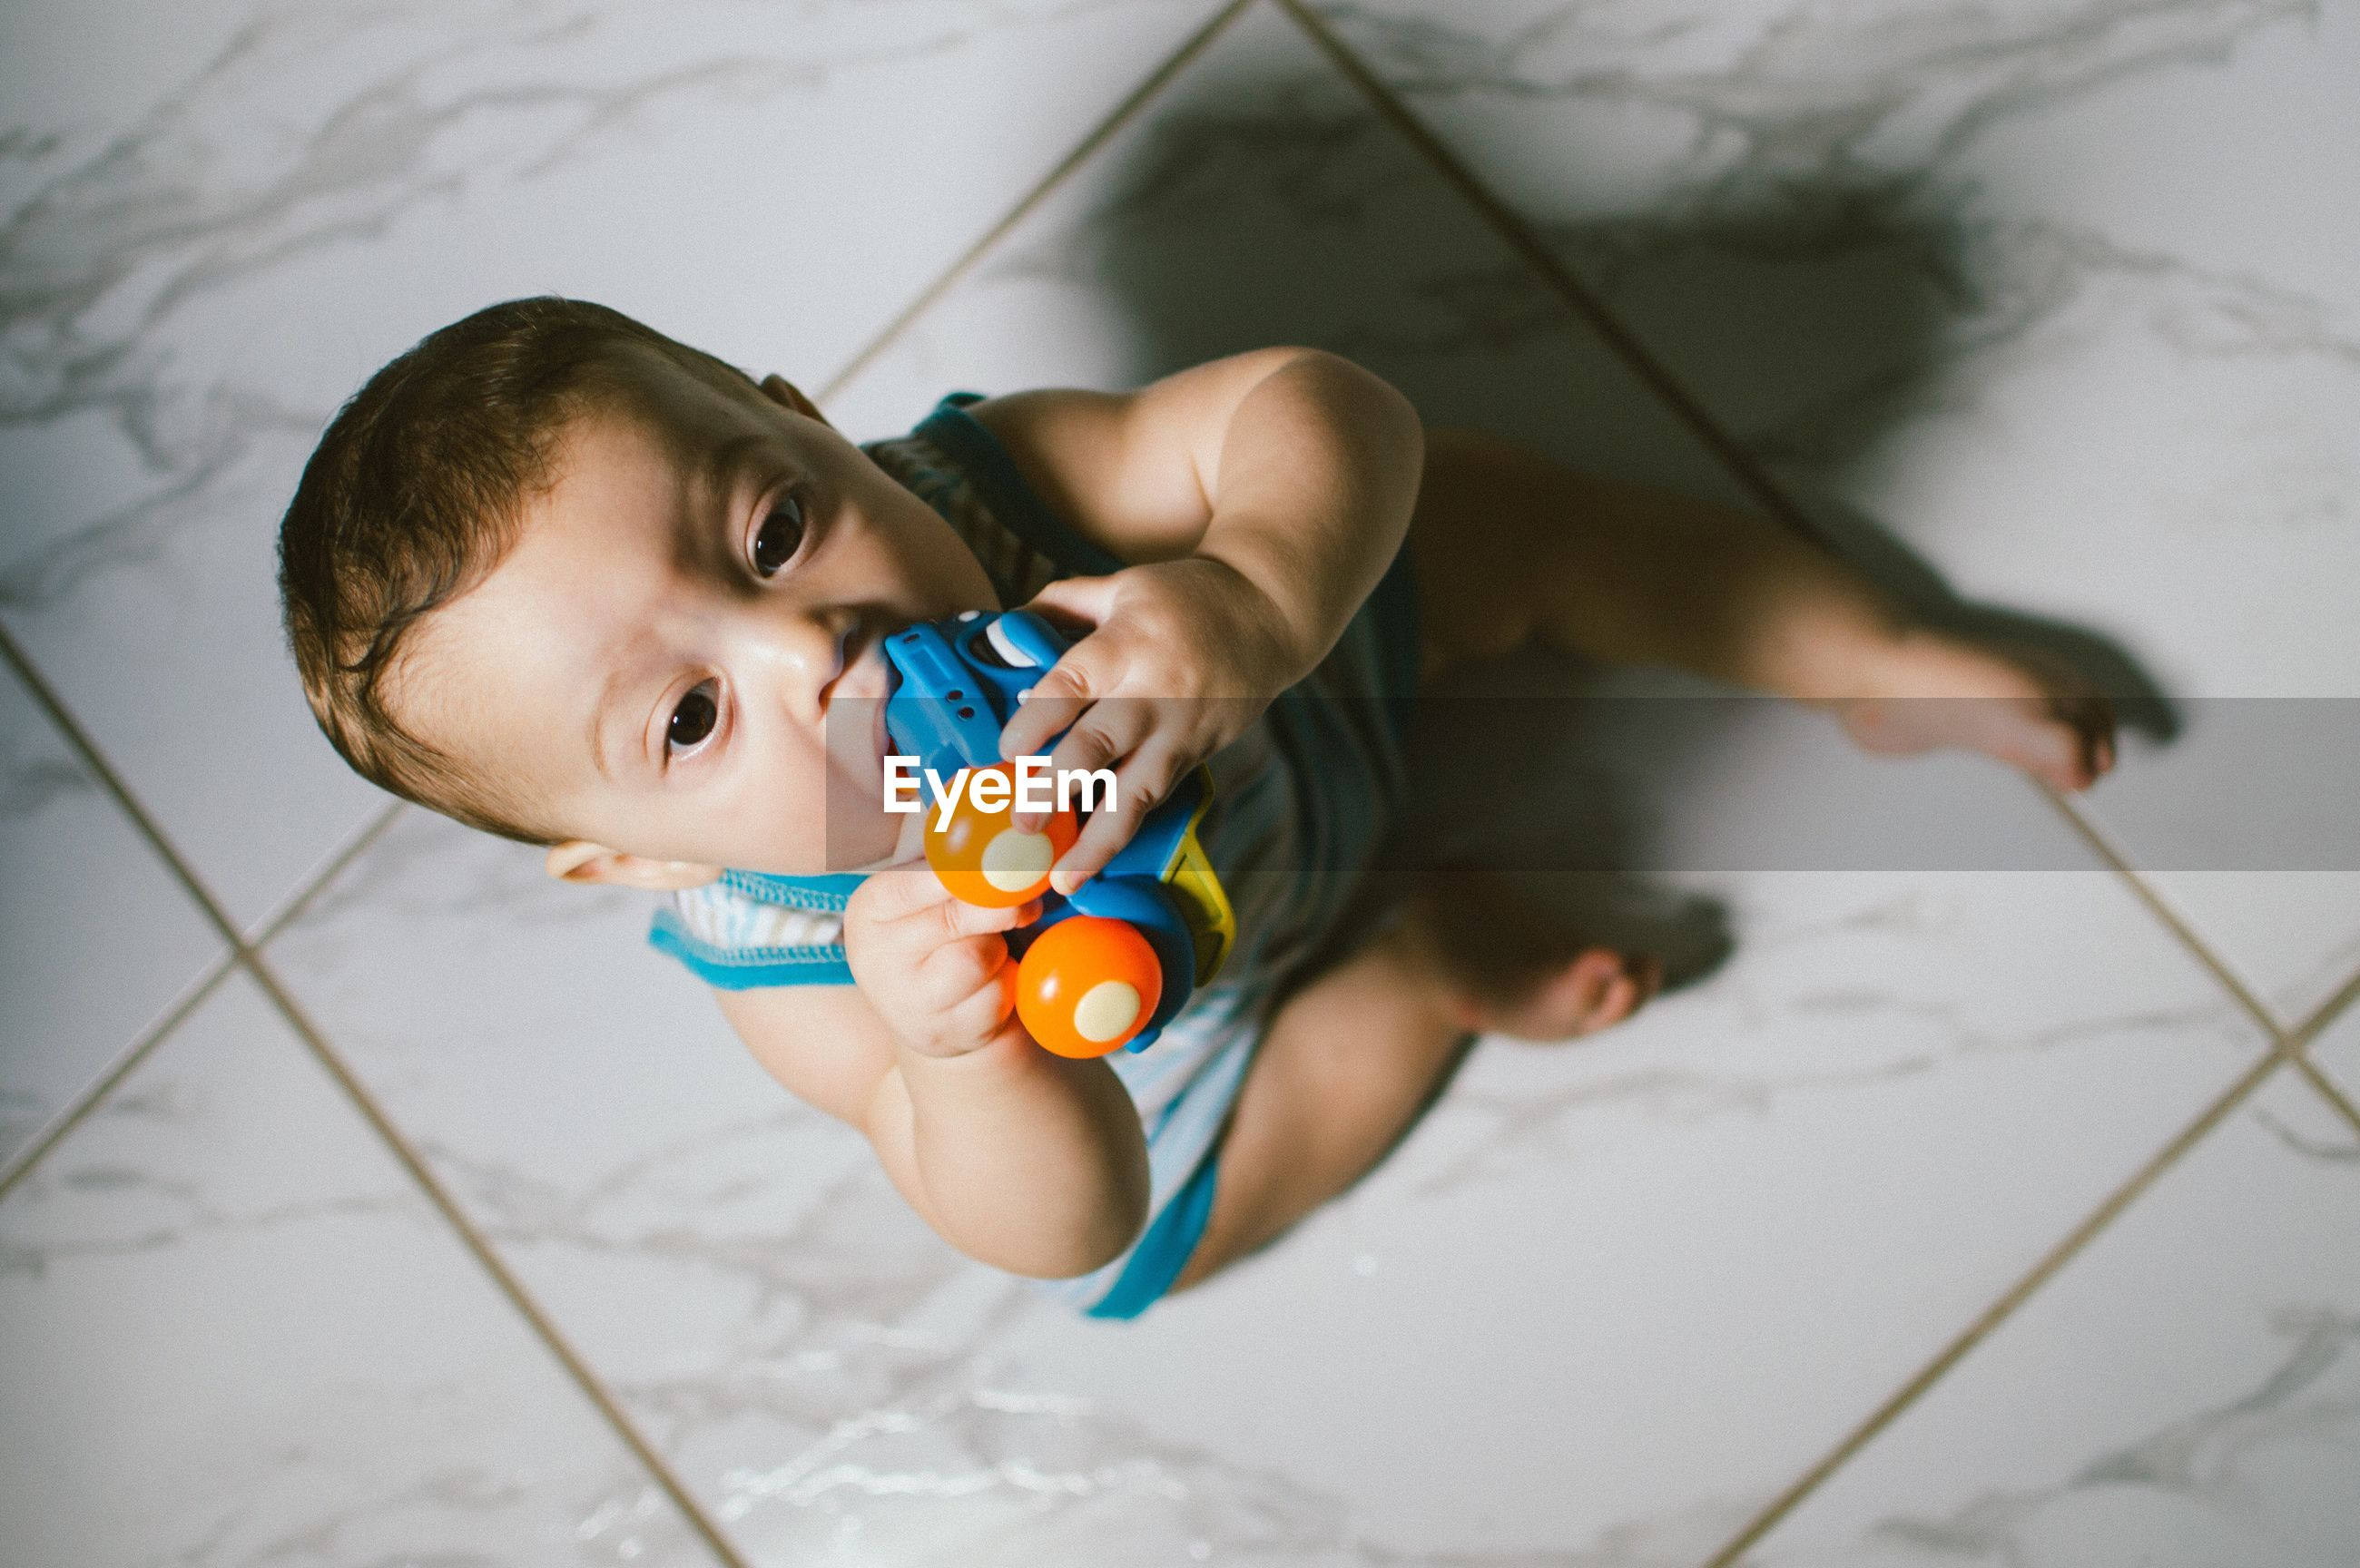 High angle view of baby boy holding toy on floor at home